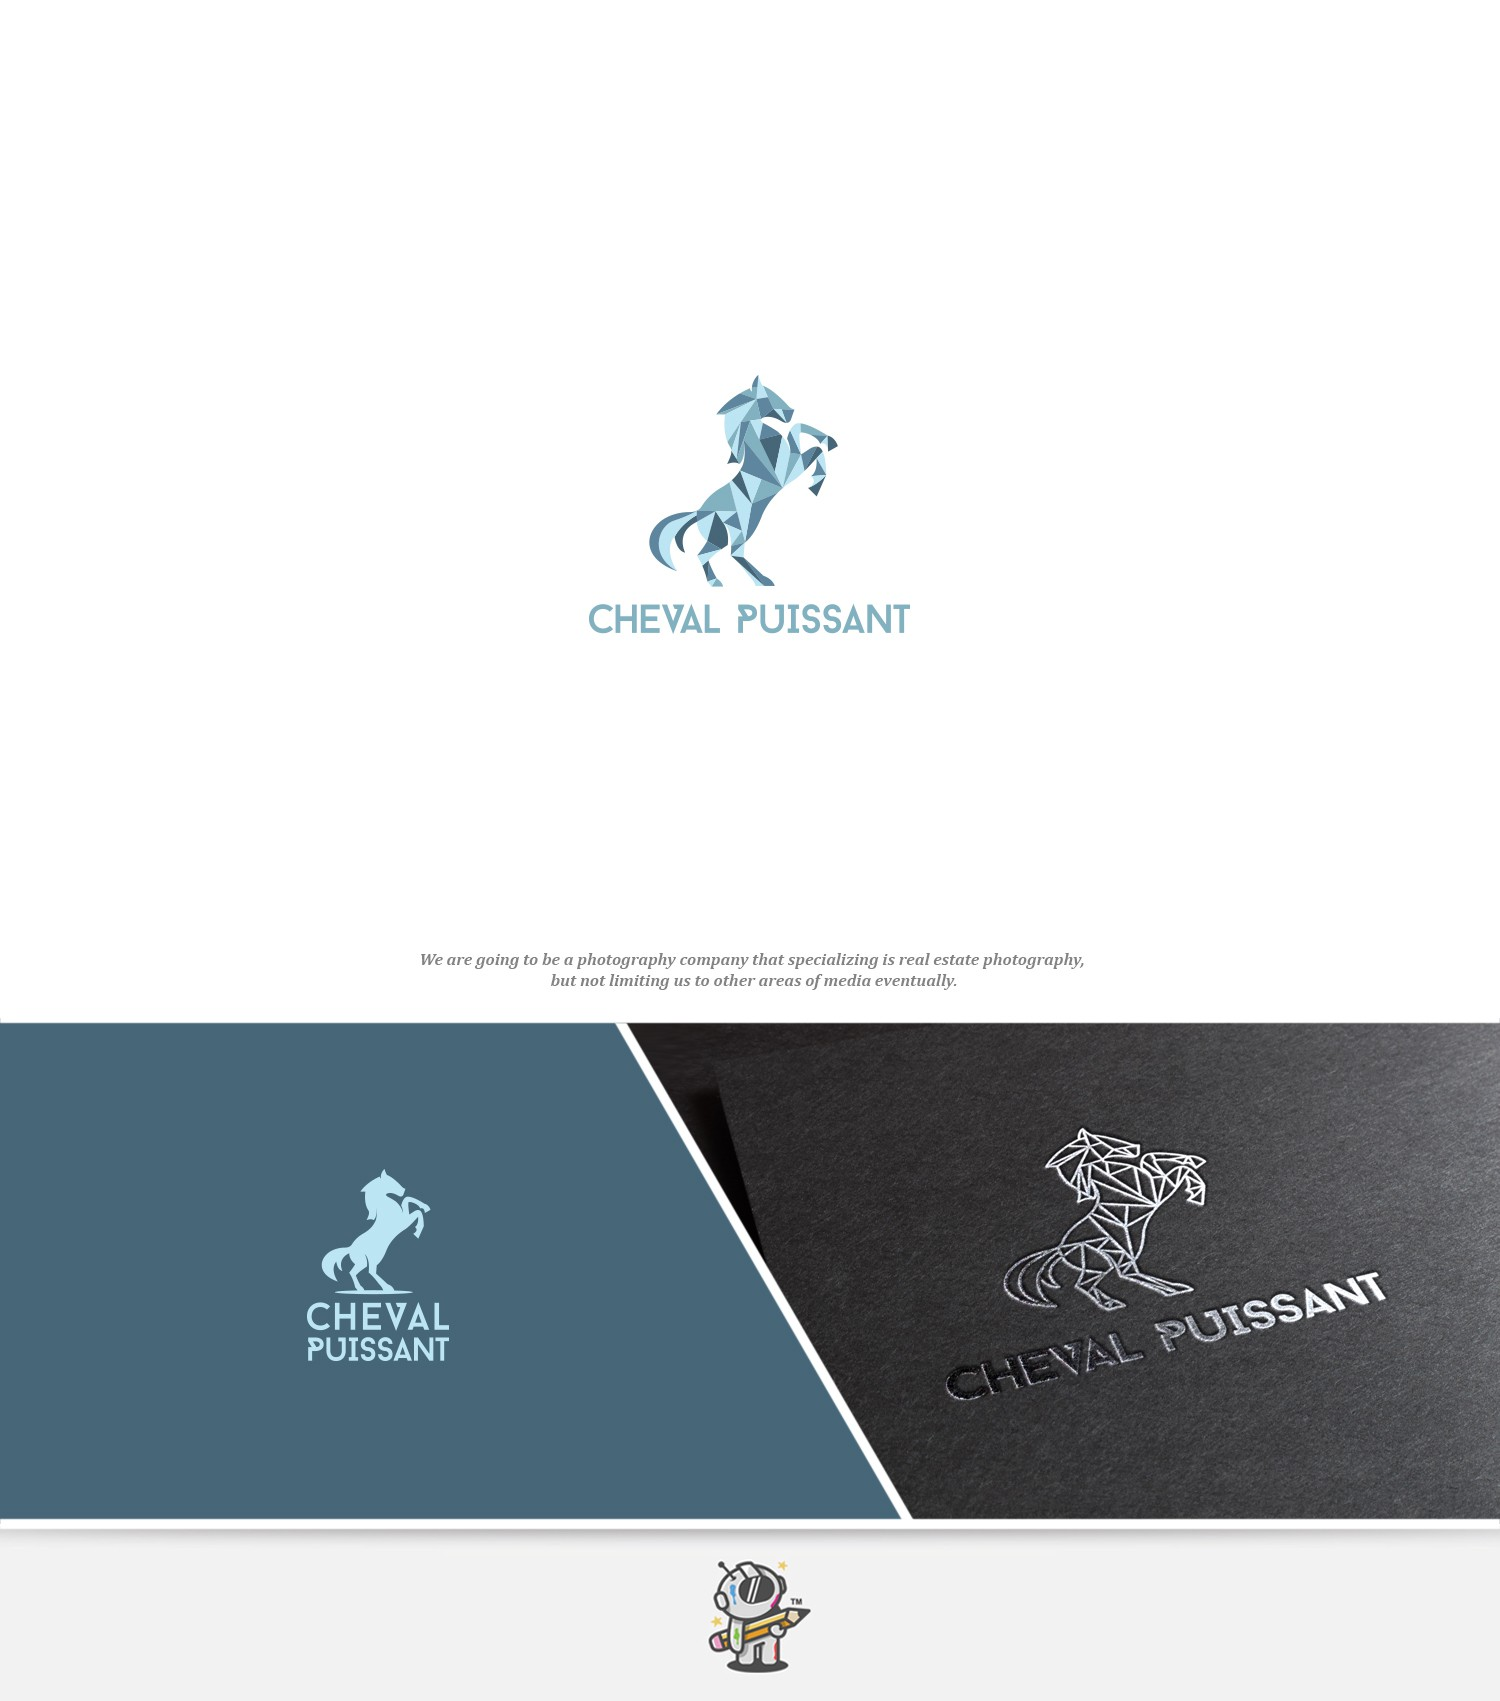 Cheval Puissant - Real Estate Photography Needs Sharp Logo - Feel free to explore horse themes